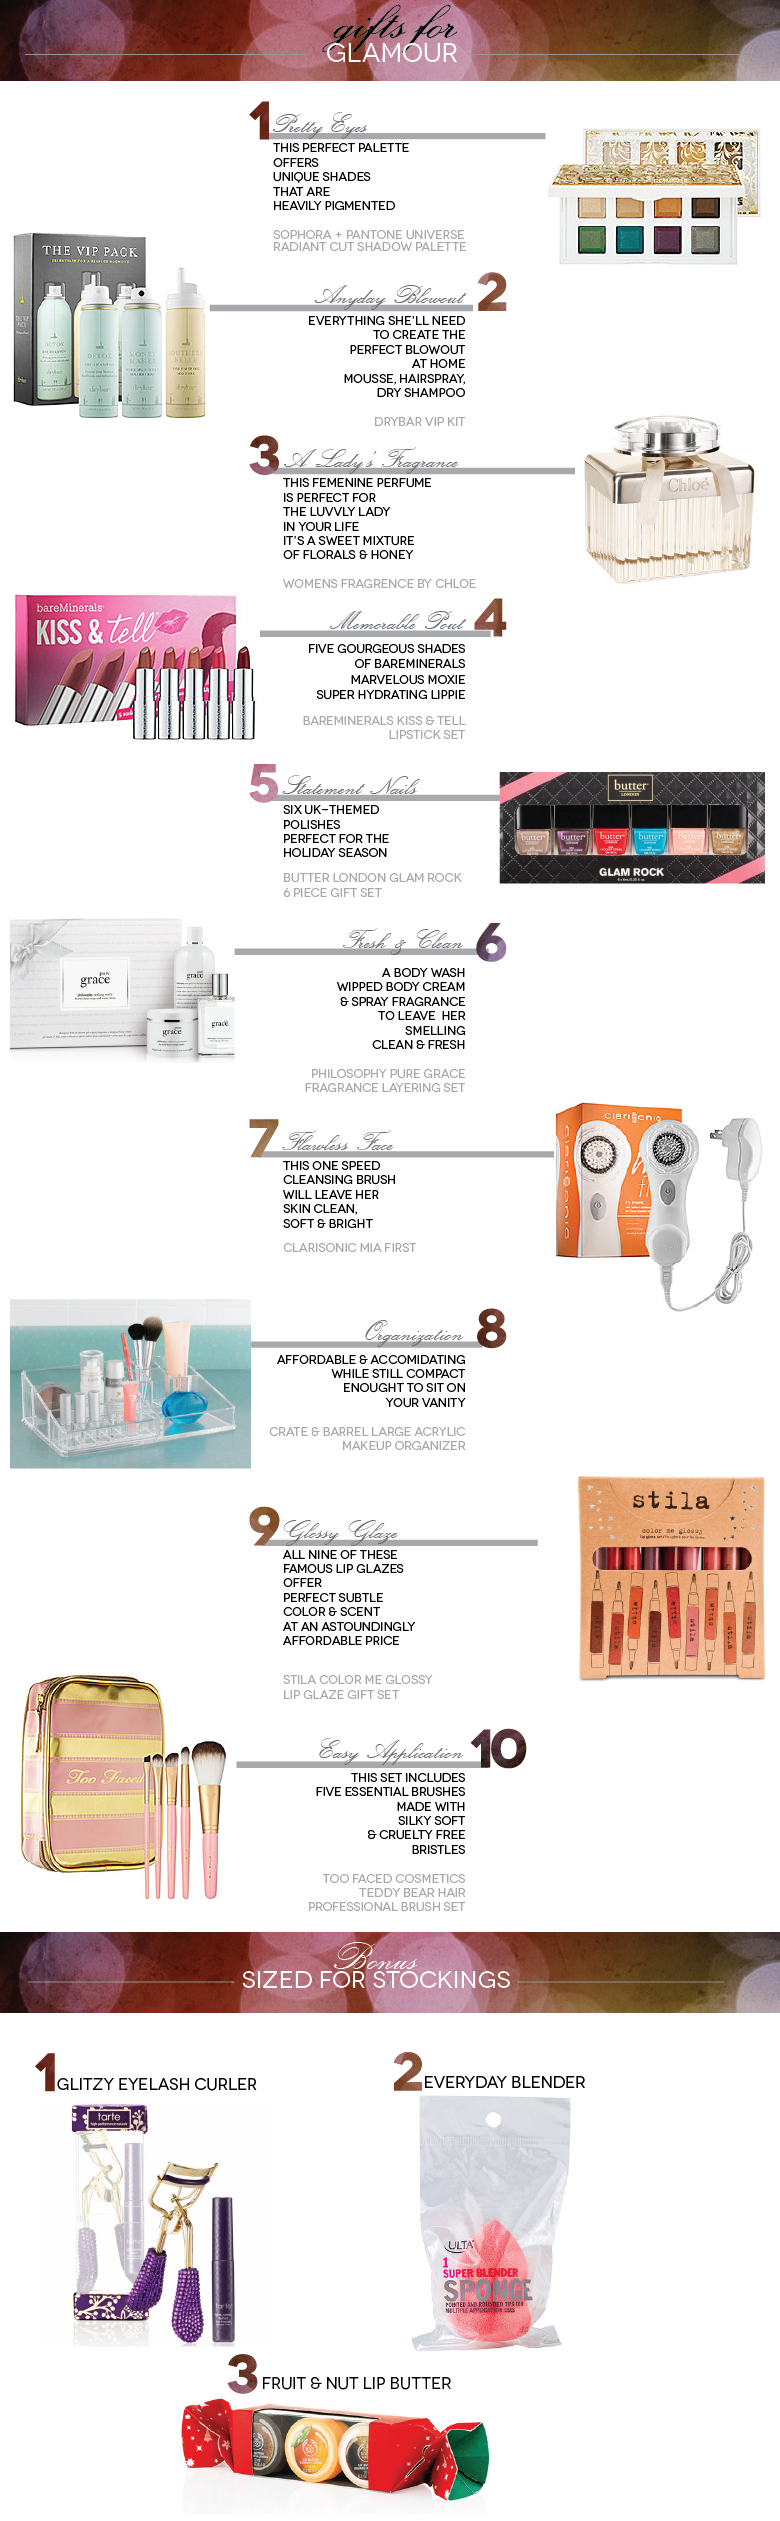 Gift Guide 2013_Beauty_Items-01